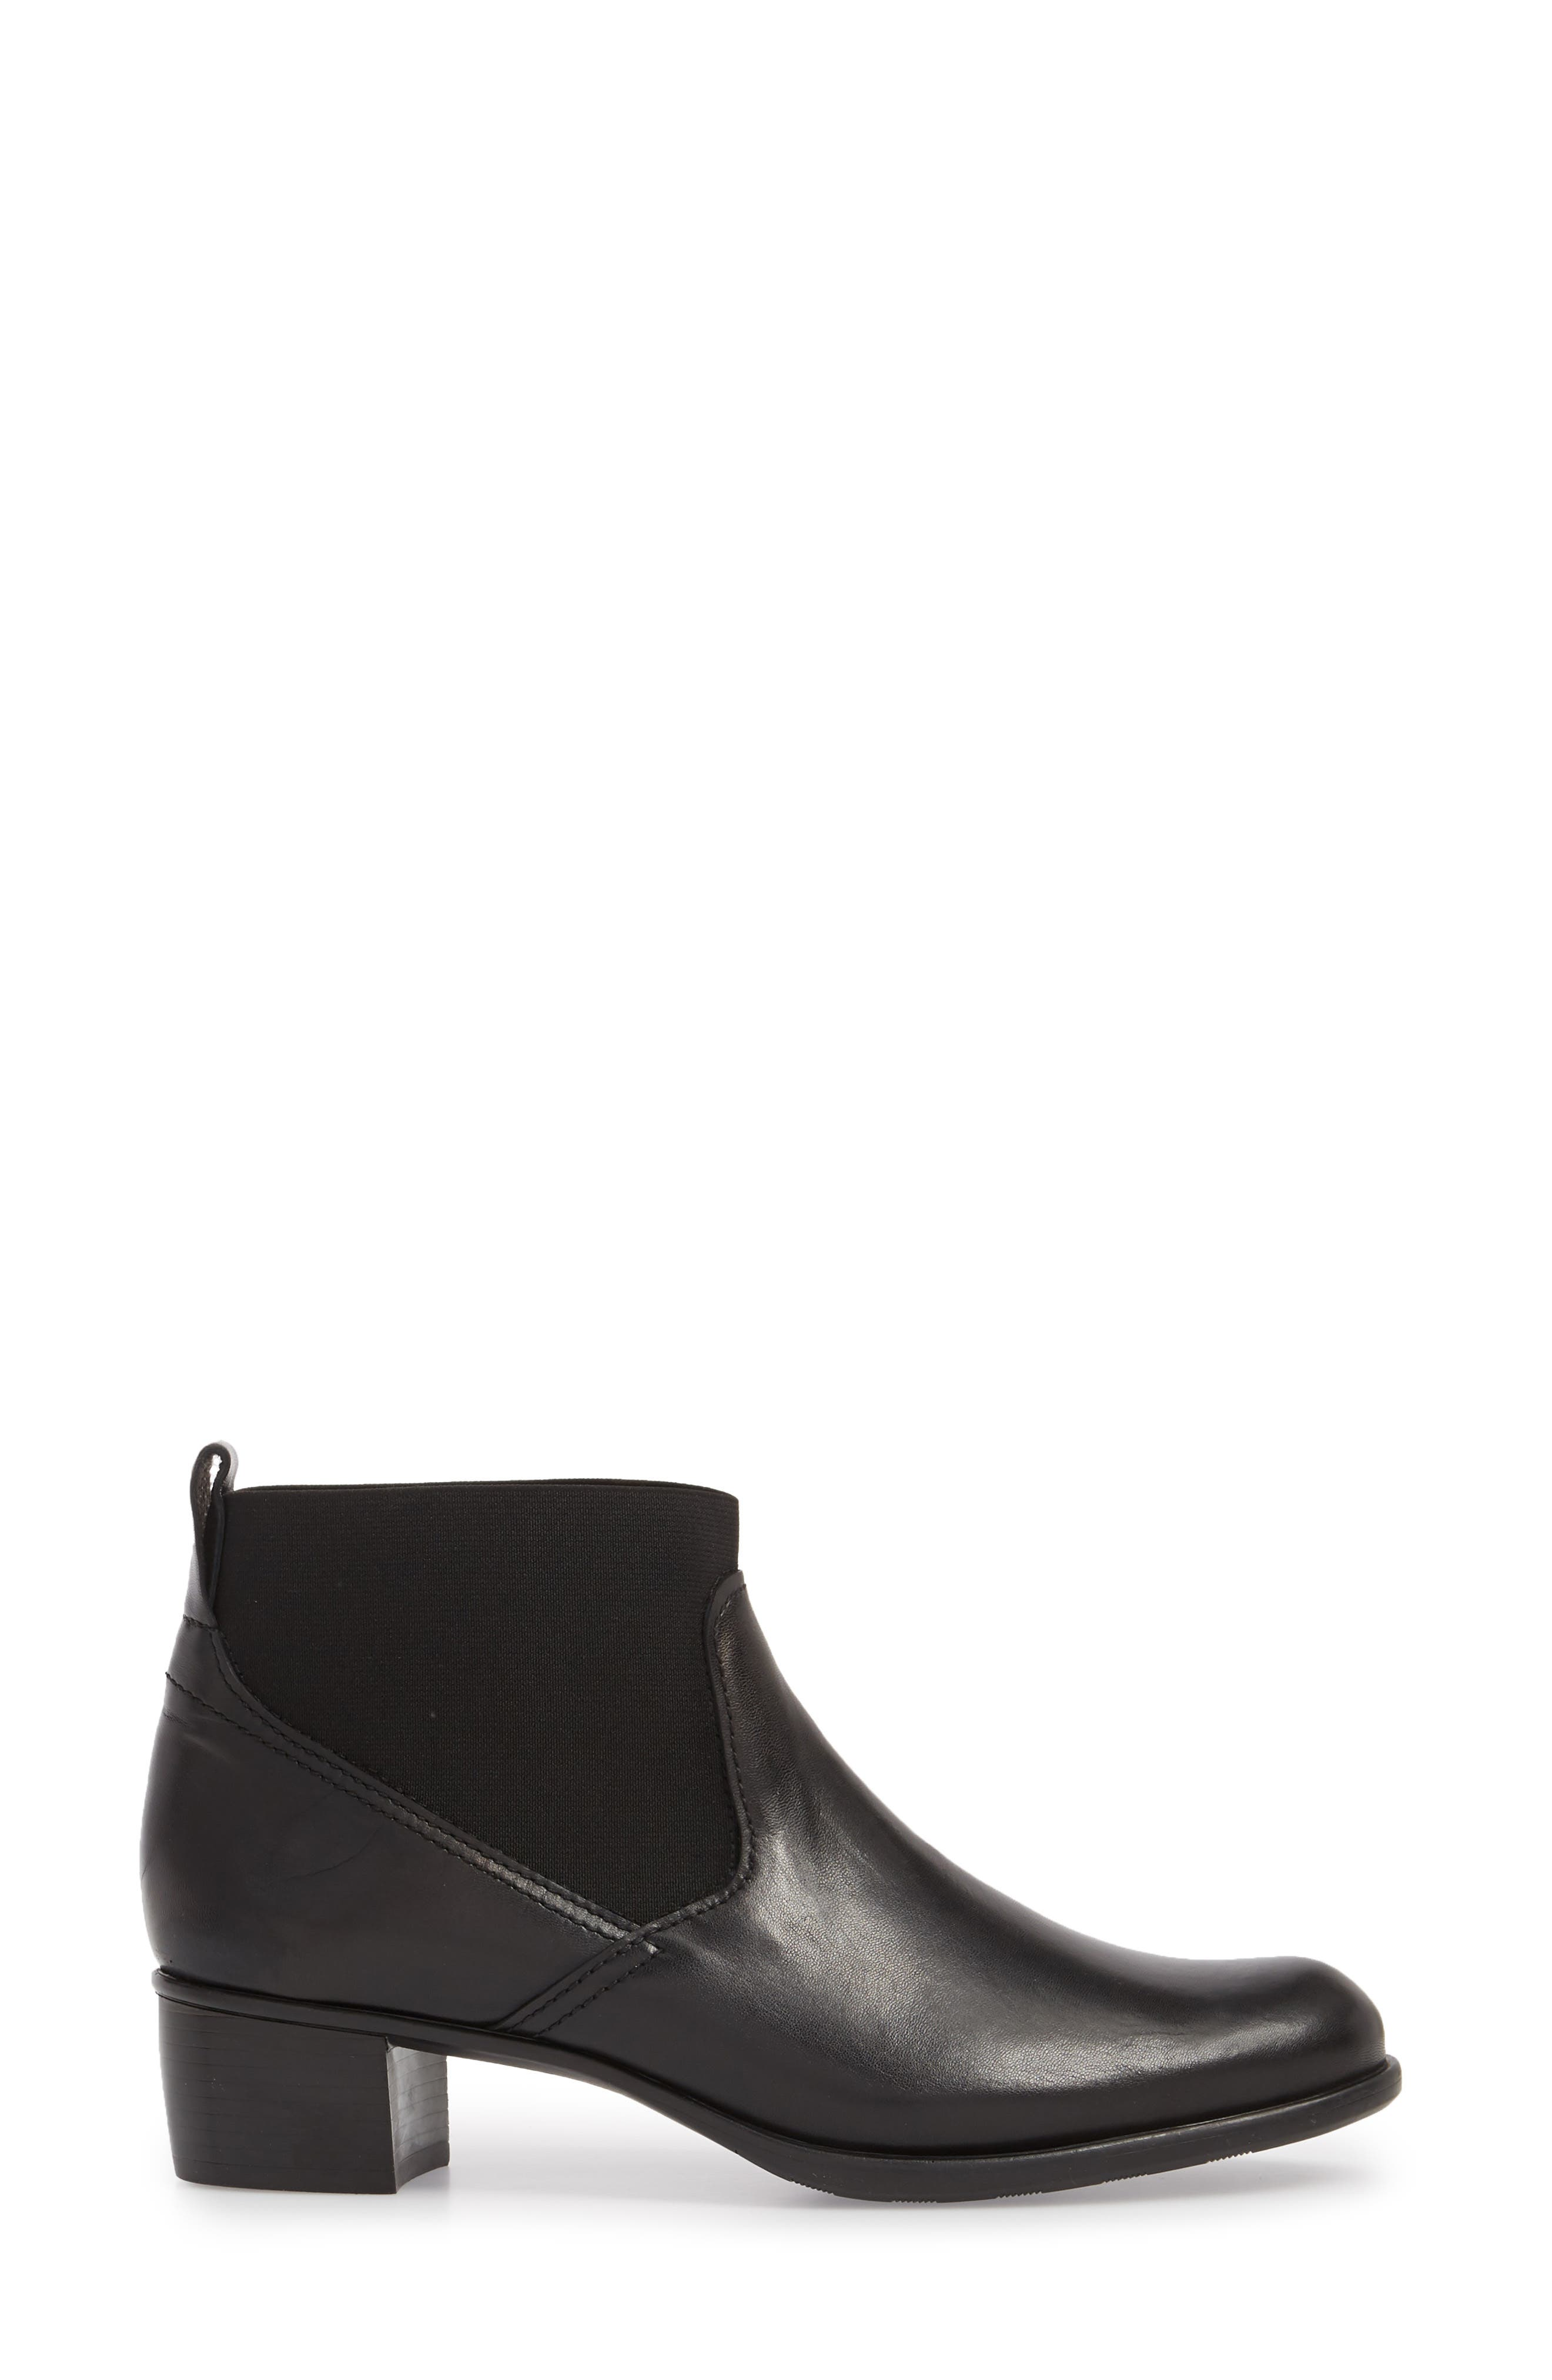 Ana Bootie,                             Alternate thumbnail 3, color,                             BLACK LEATHER